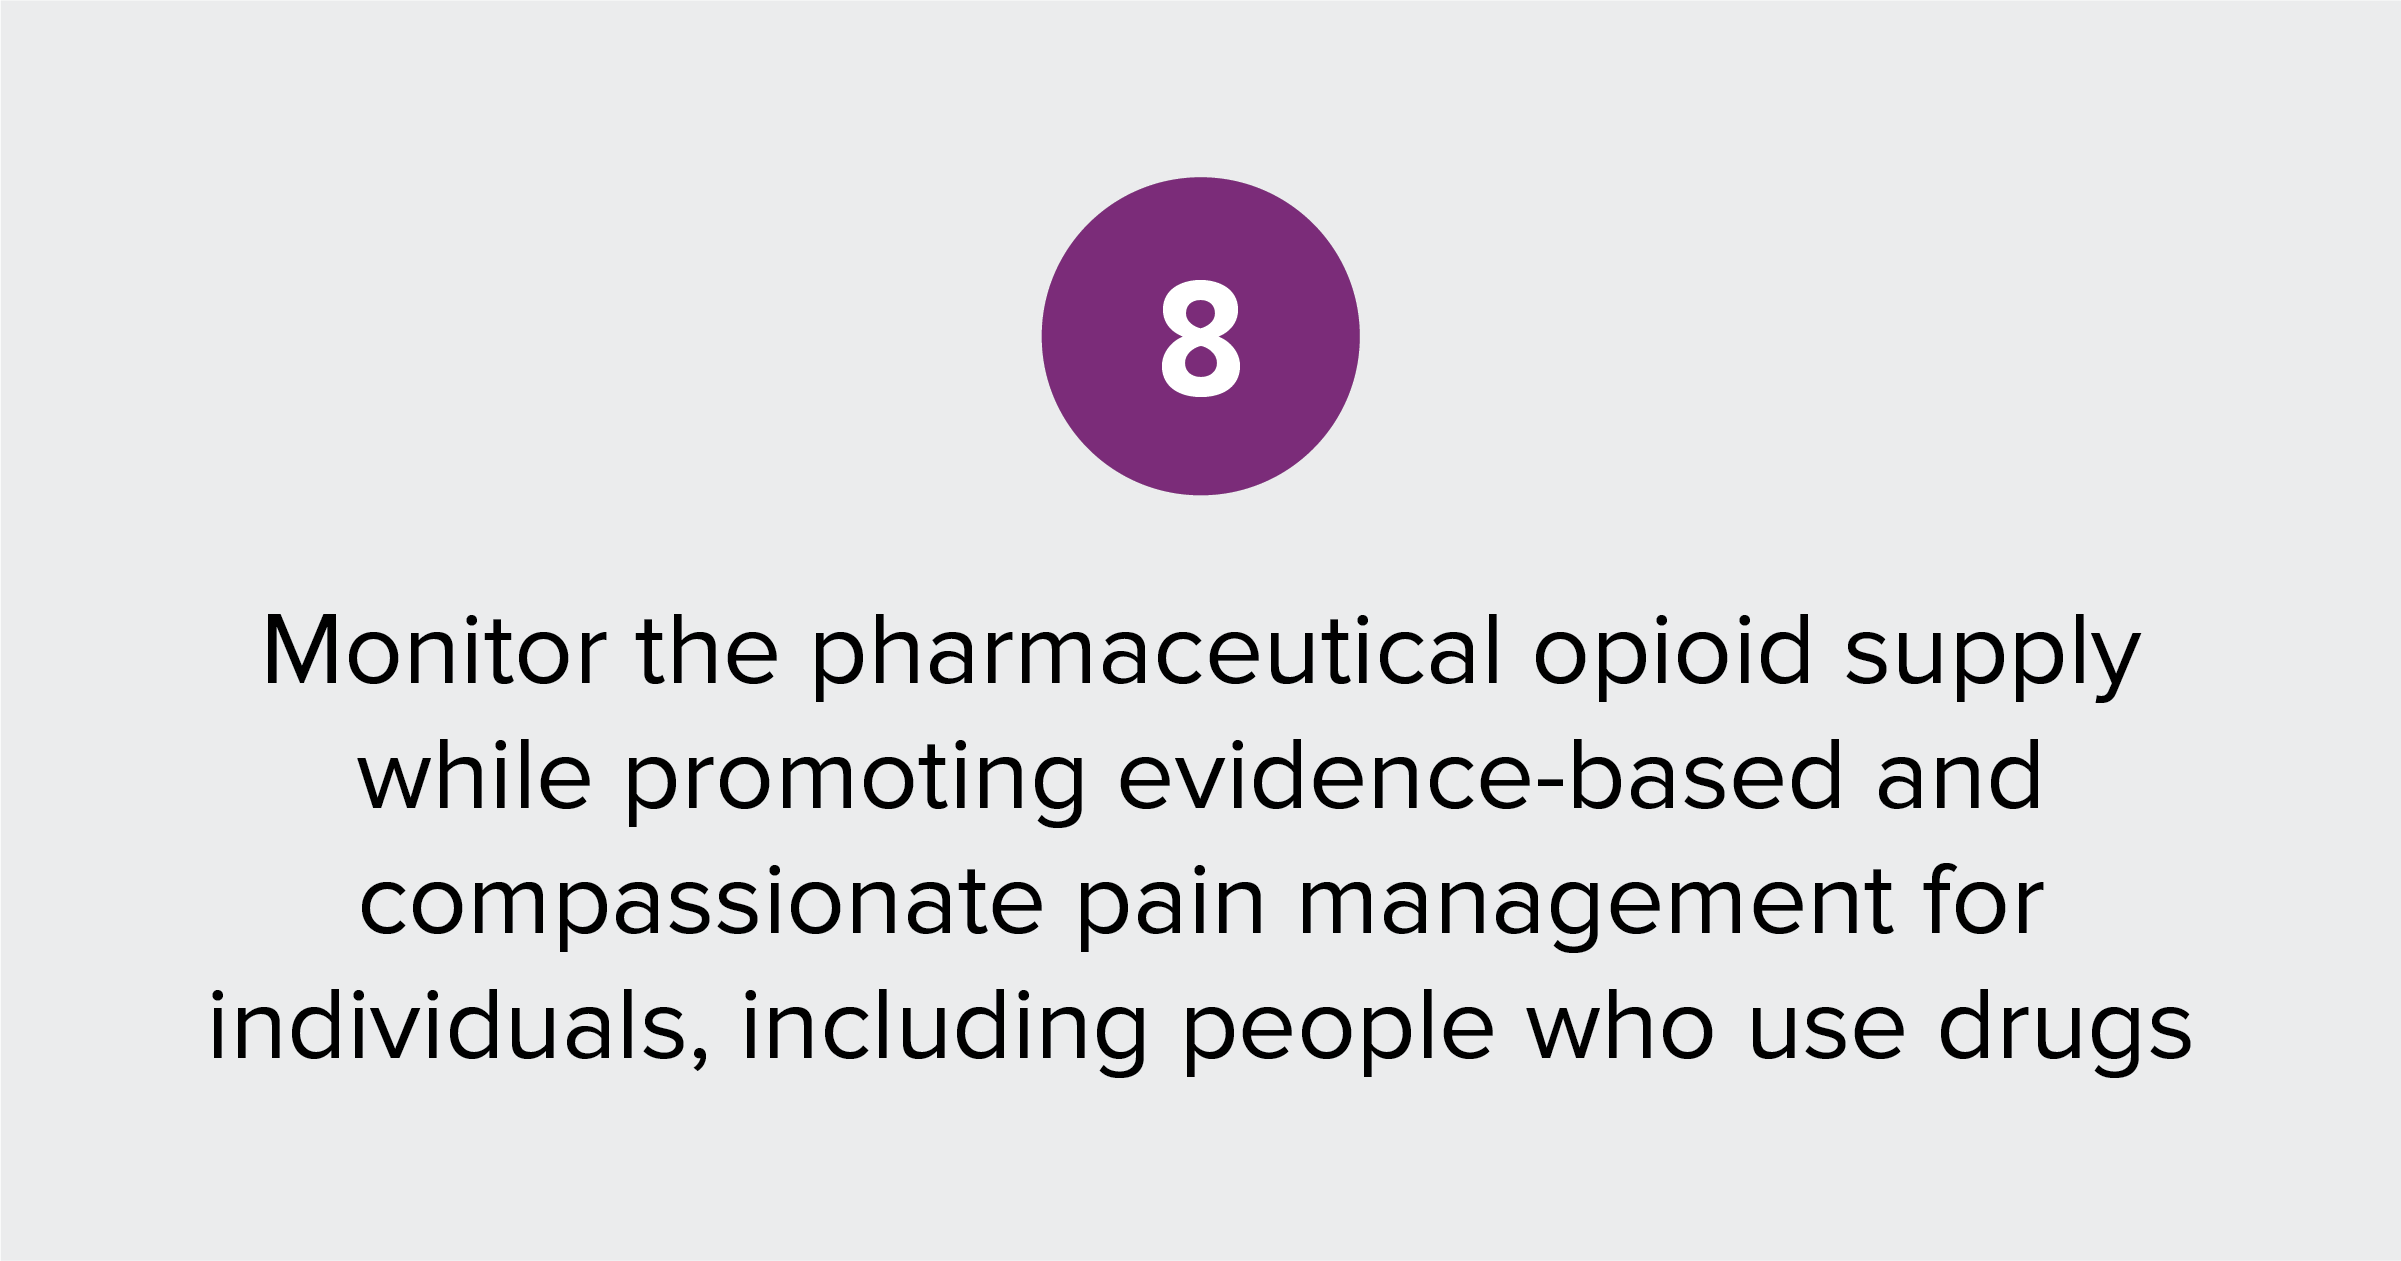 Text of report recommendation 8: Monitor the pharmaceutical opioid supply while promoting evidence-based and compassionate pain management for individuals, including people who use drugs